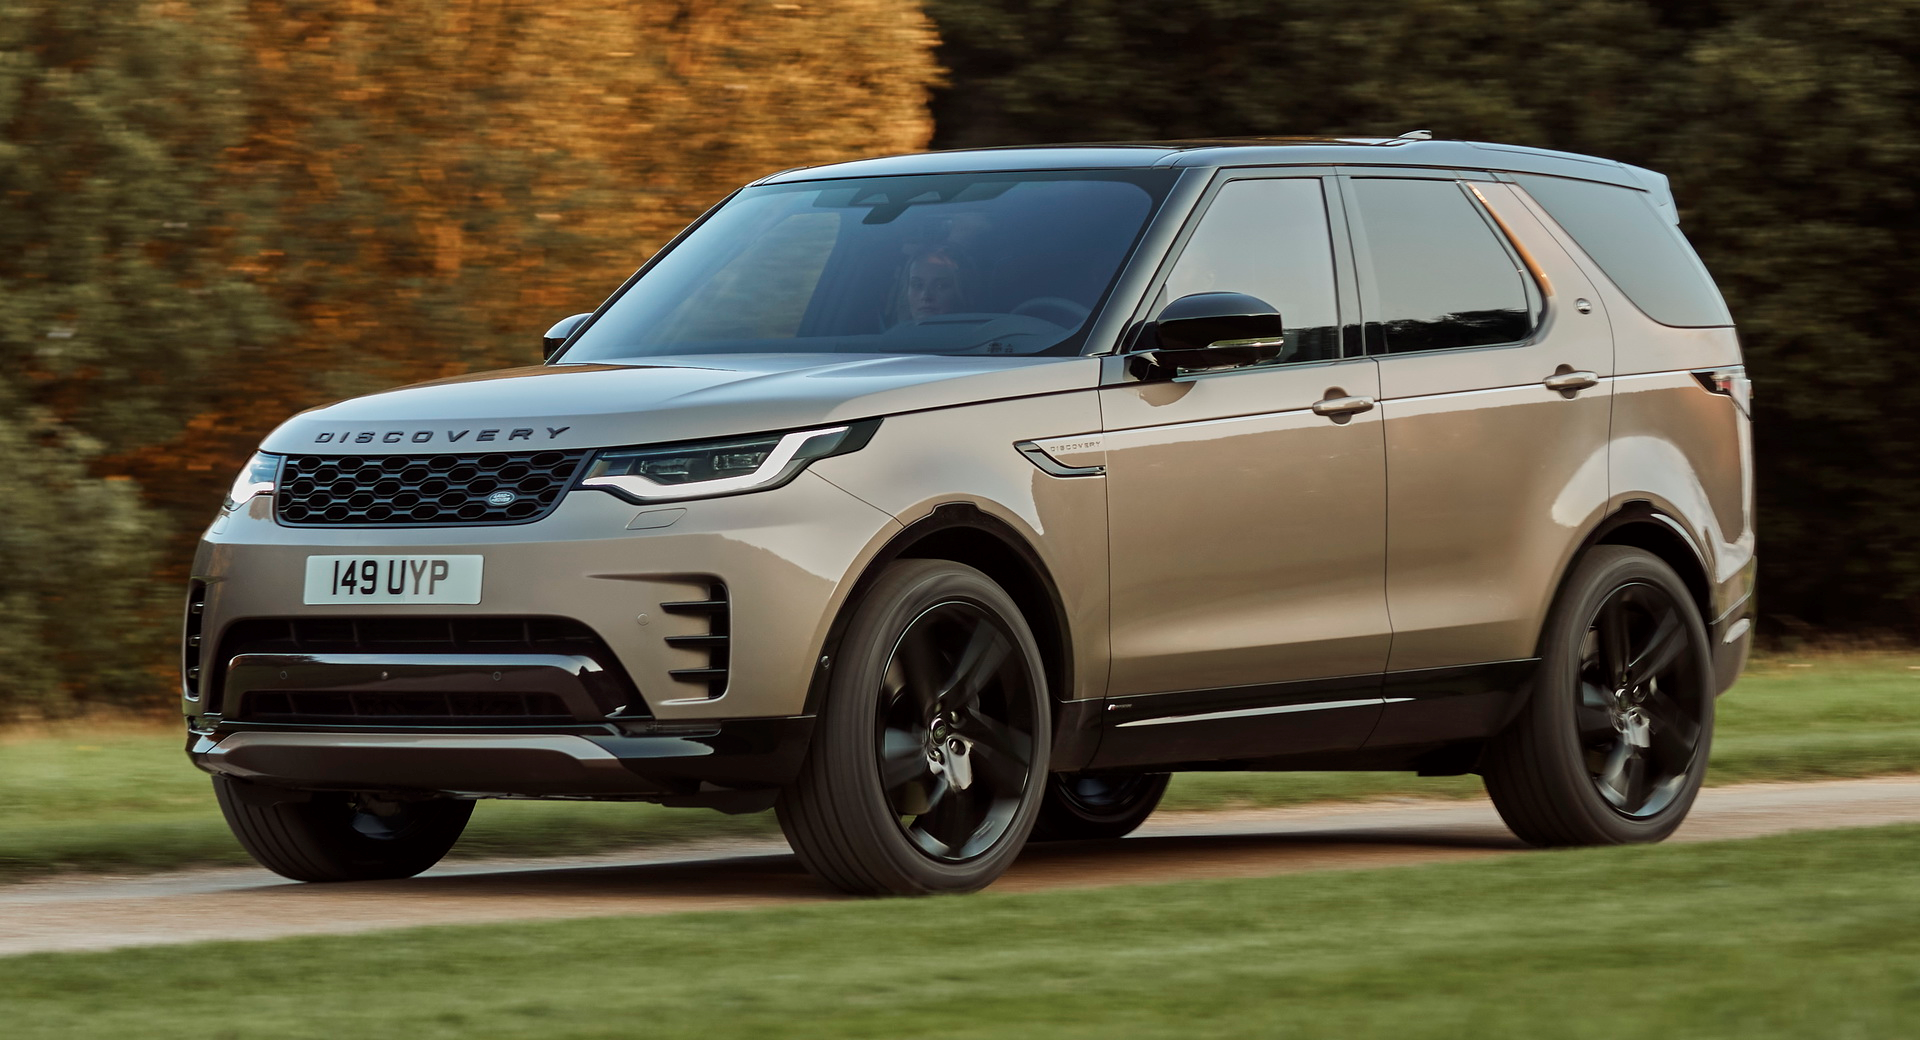 Europe's 2021 Land Rover Discovery Adopts Mild Hybrid Six ...